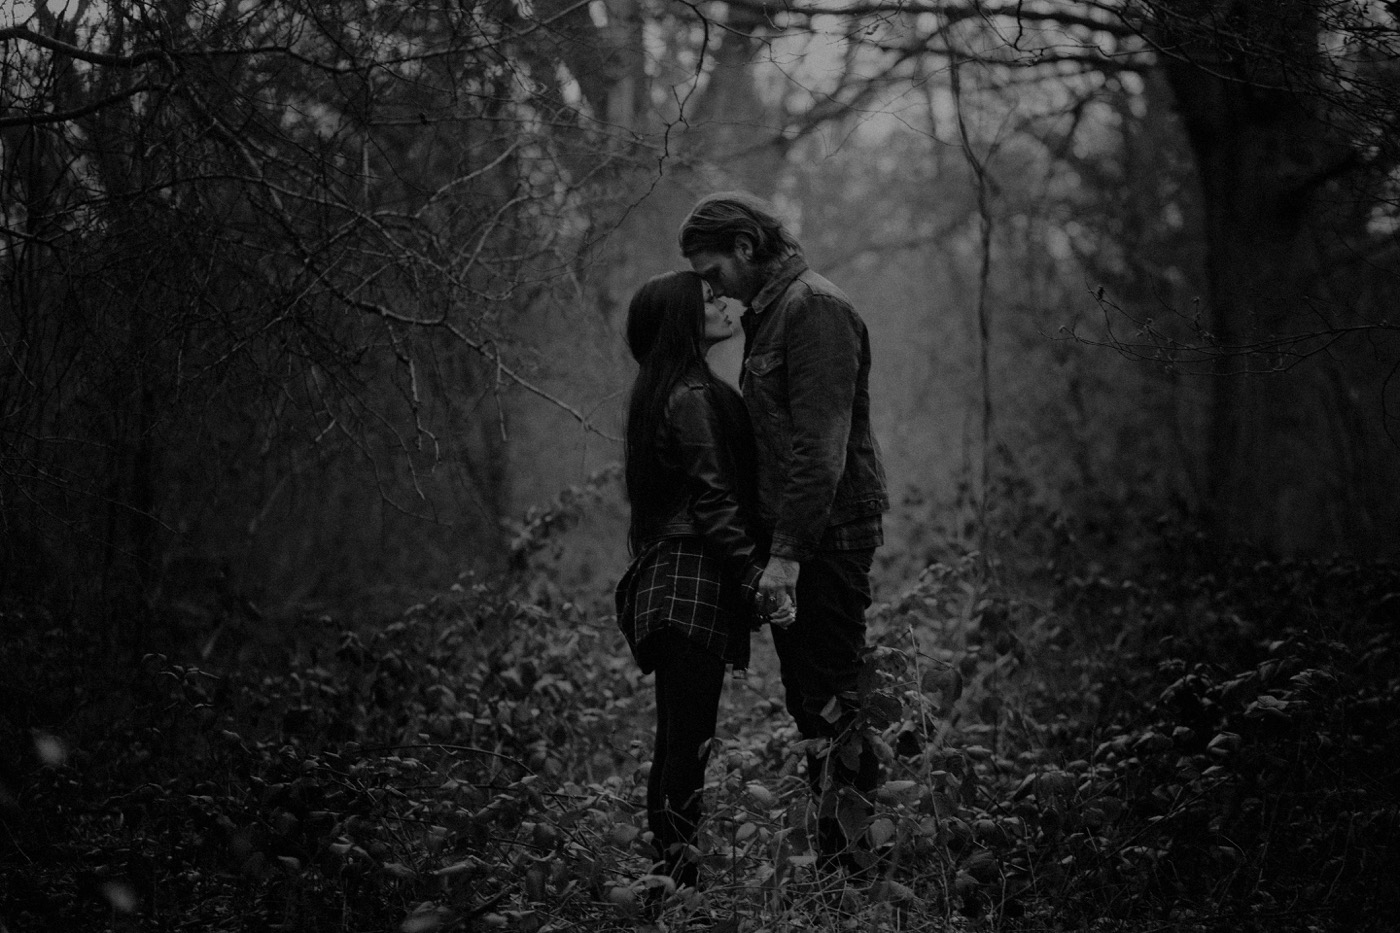 engement-photography-and-natural-couple-photoshoot-london-33.JPG